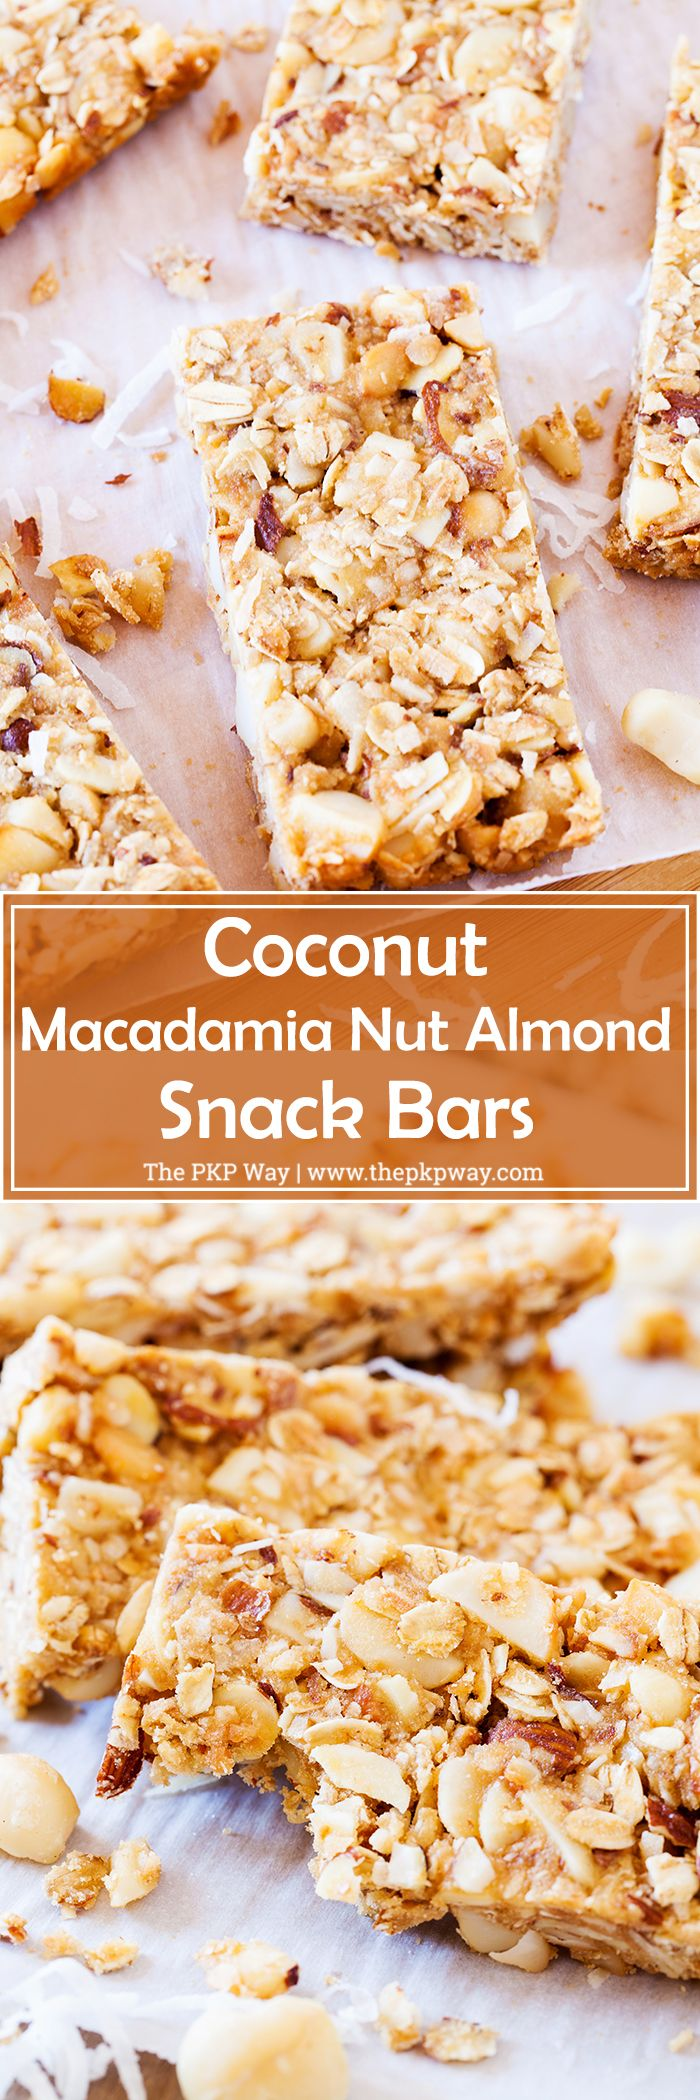 These Coconut Macadamia Nut Almond Snack Bars are perfect for an after school…